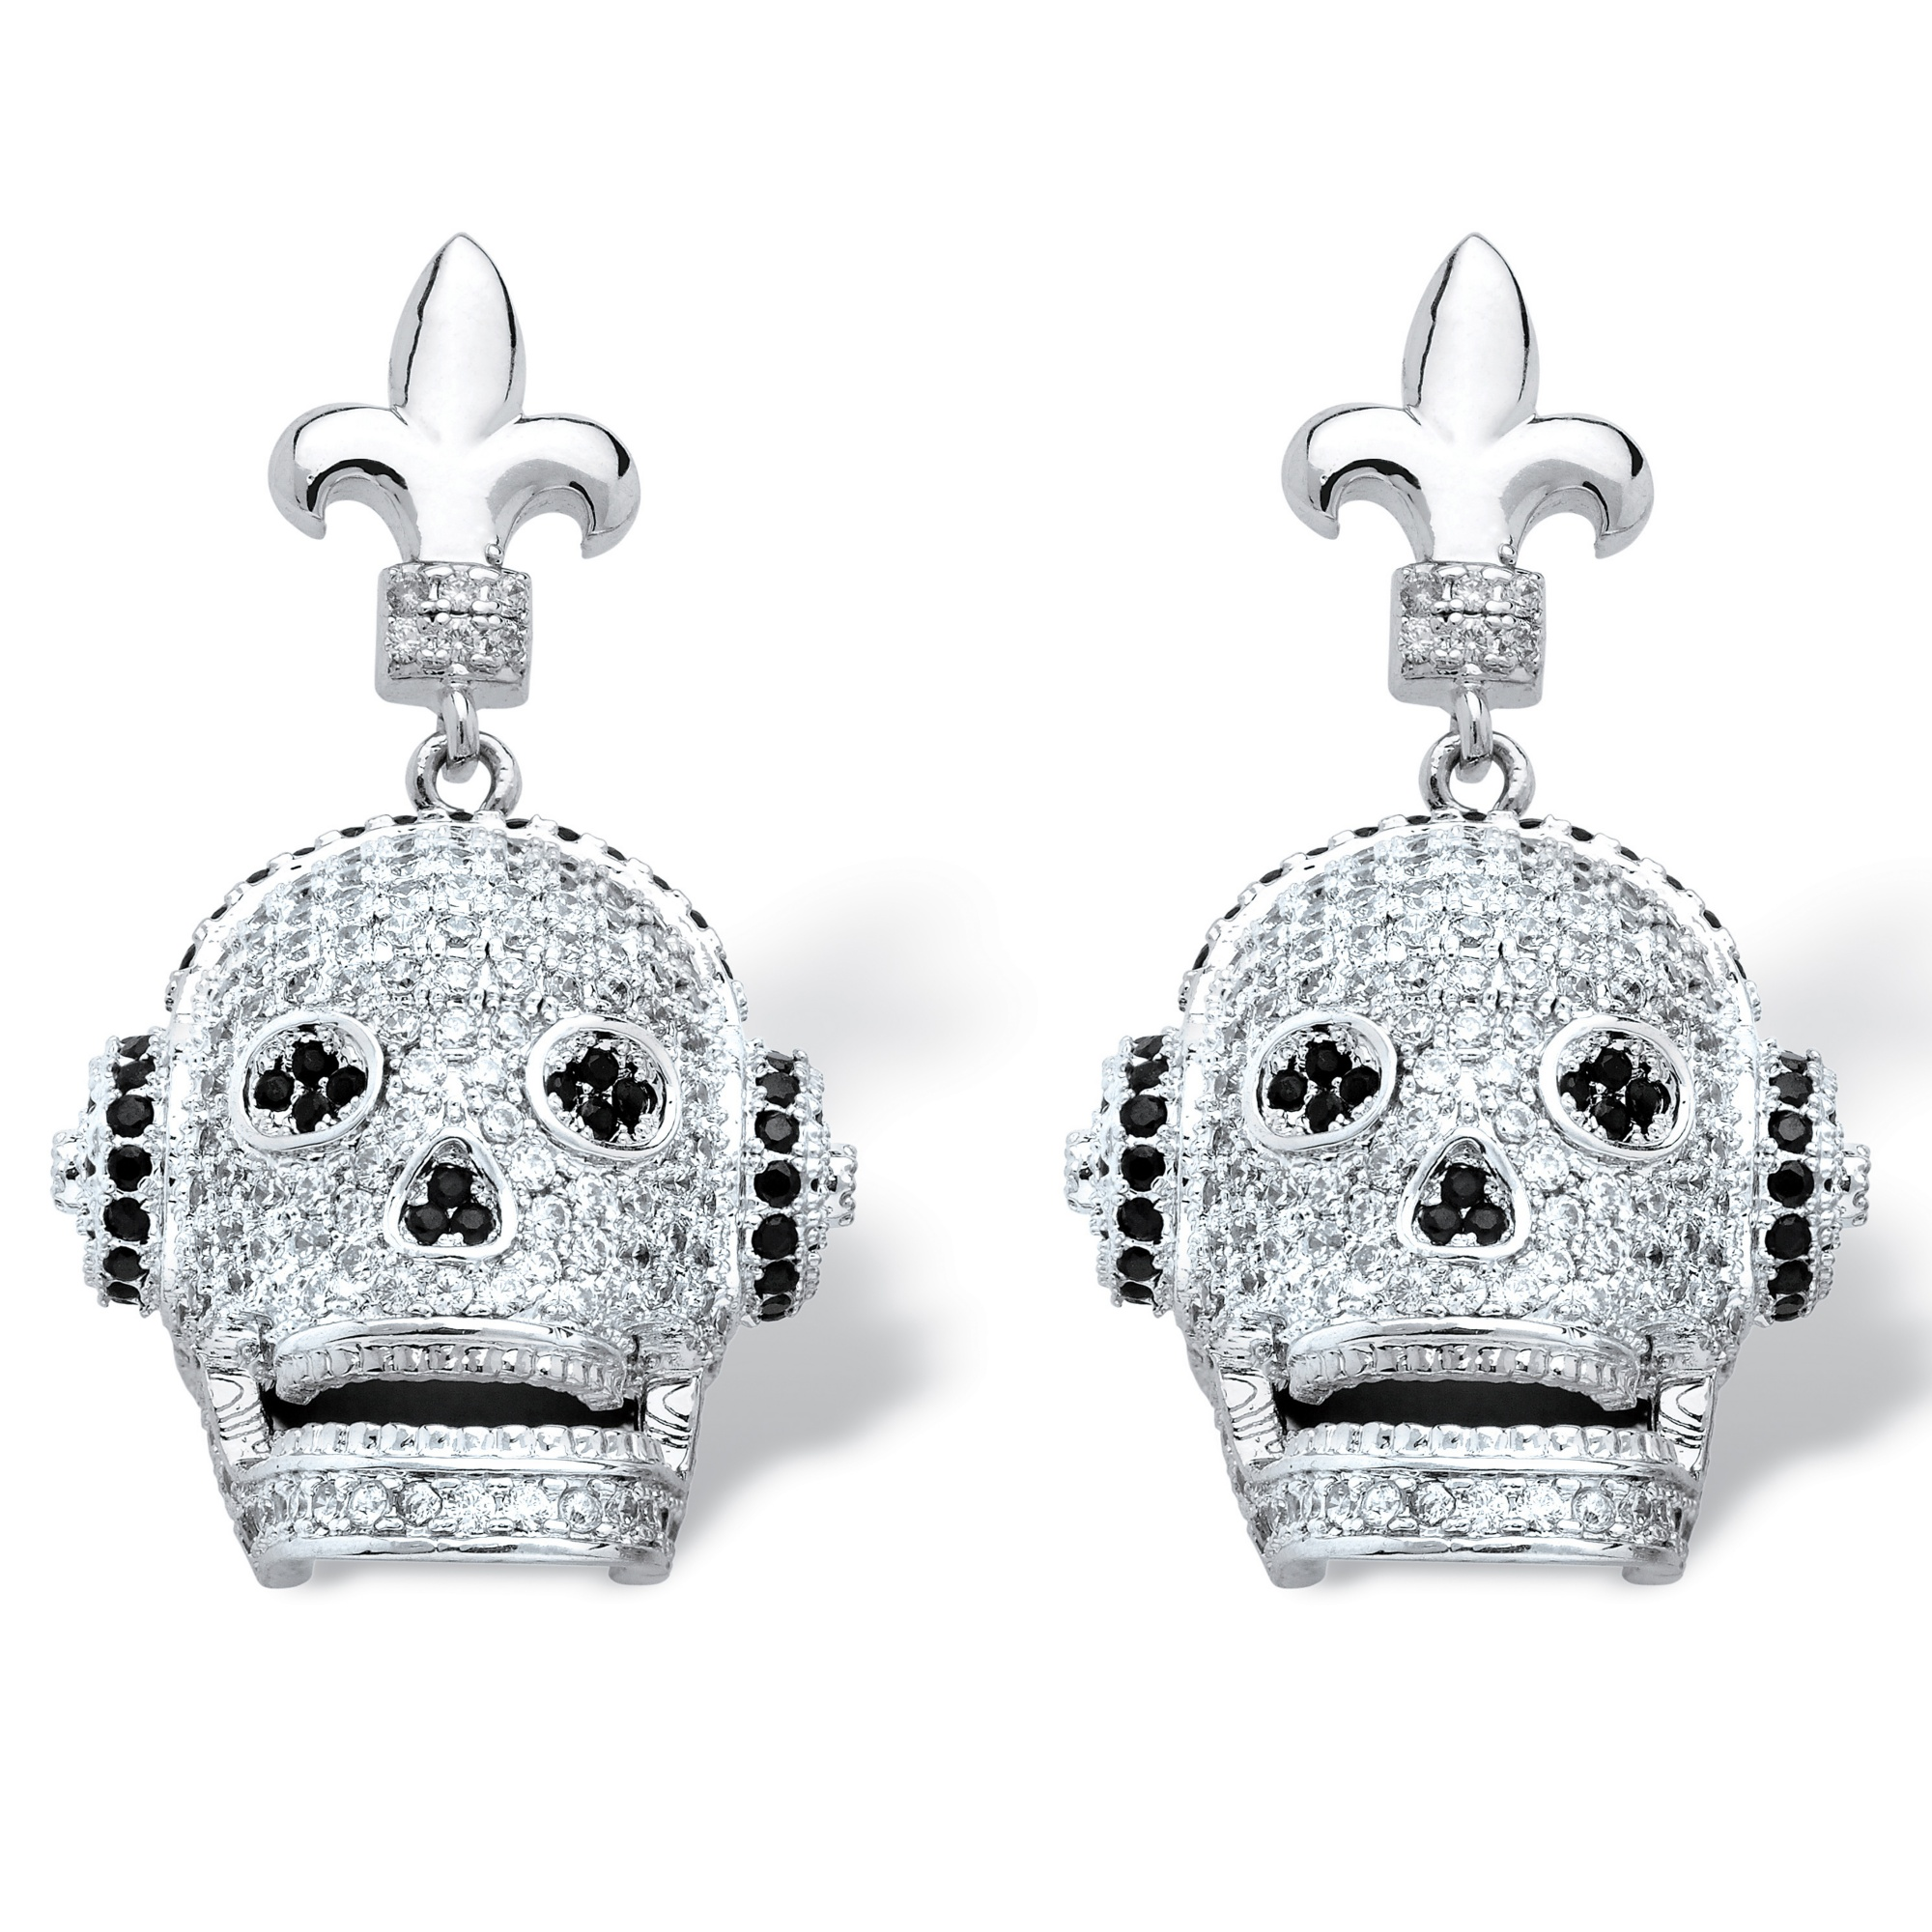 2.25 TCW Micro-Set Cubic Zirconia Laughing Skull with Headphones Earrings in Silvertone